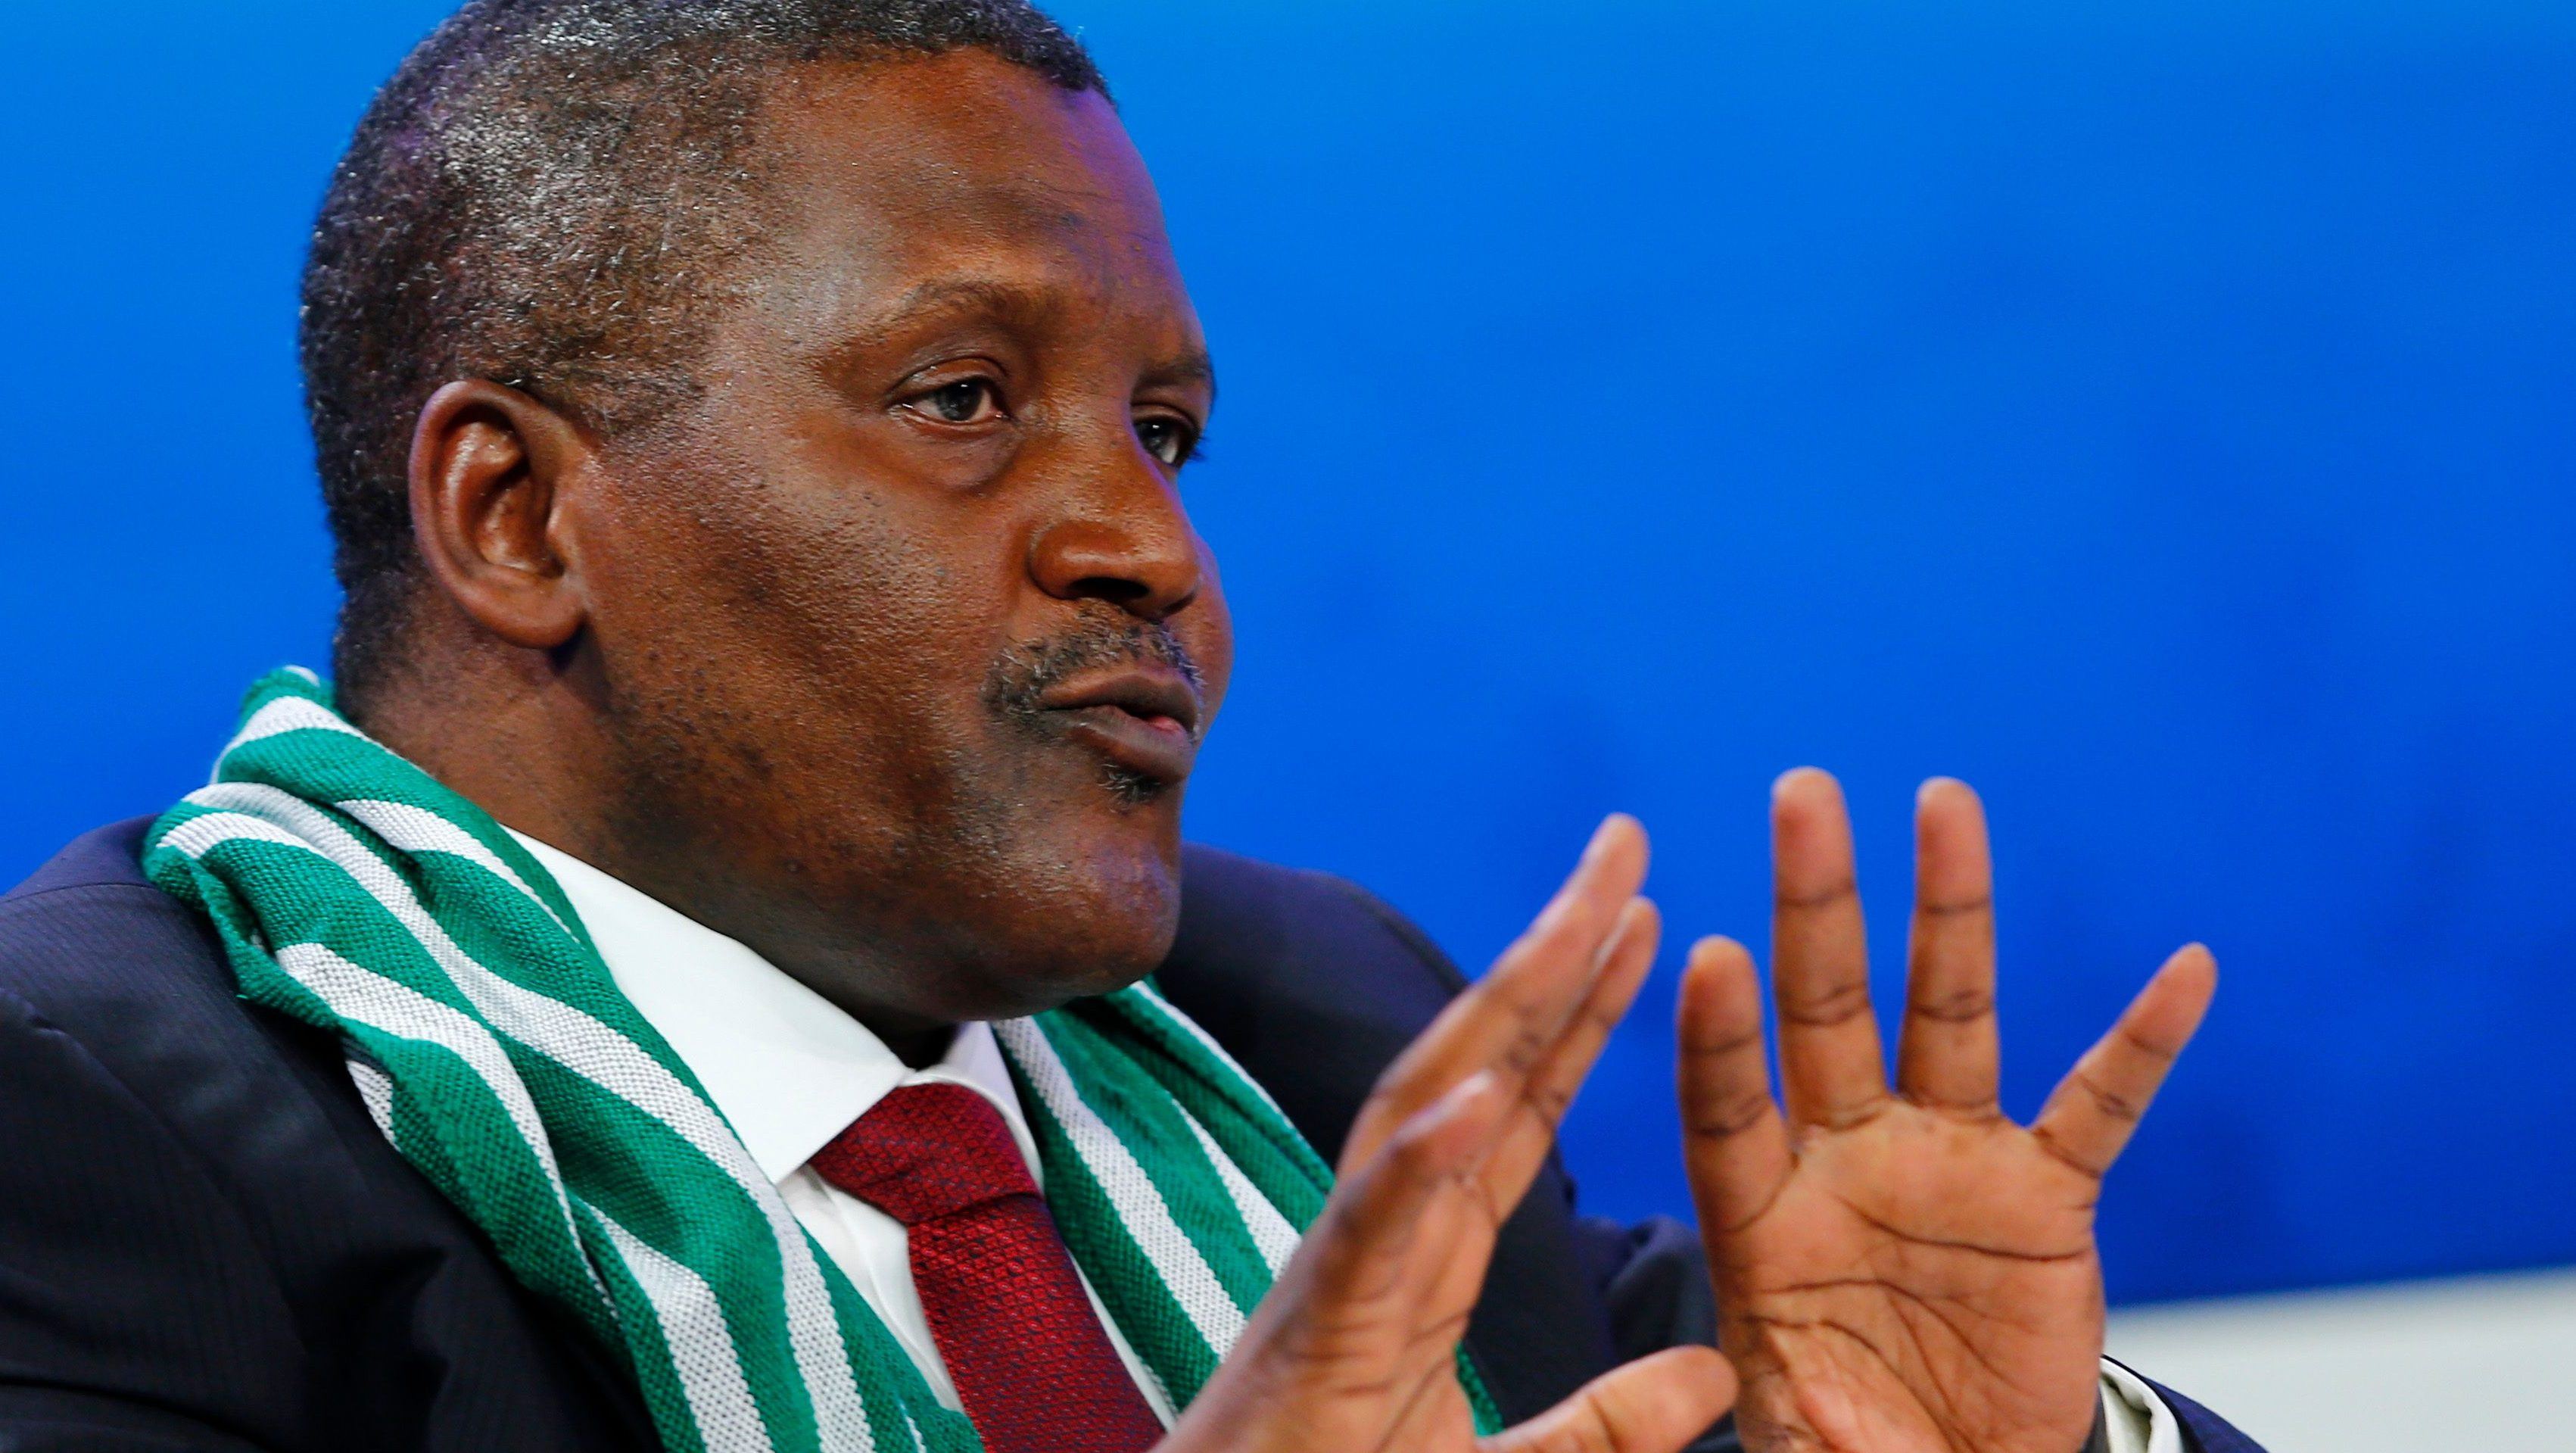 Dangote President and CEO of Dangote Group and Co-Chair of WEF 2014 speaks during session at World Economic Forum in Davos